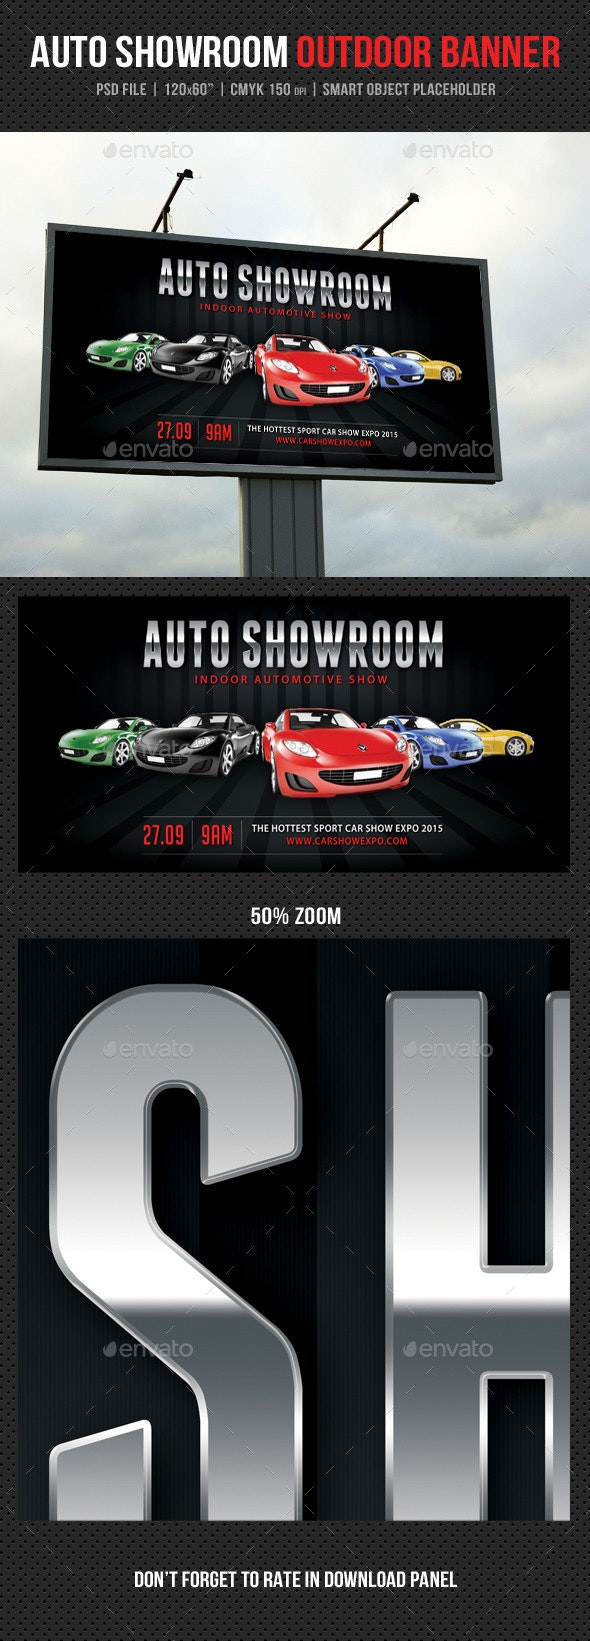 Auto Showroom Outdoor Banner 04 - Signage Print Templates